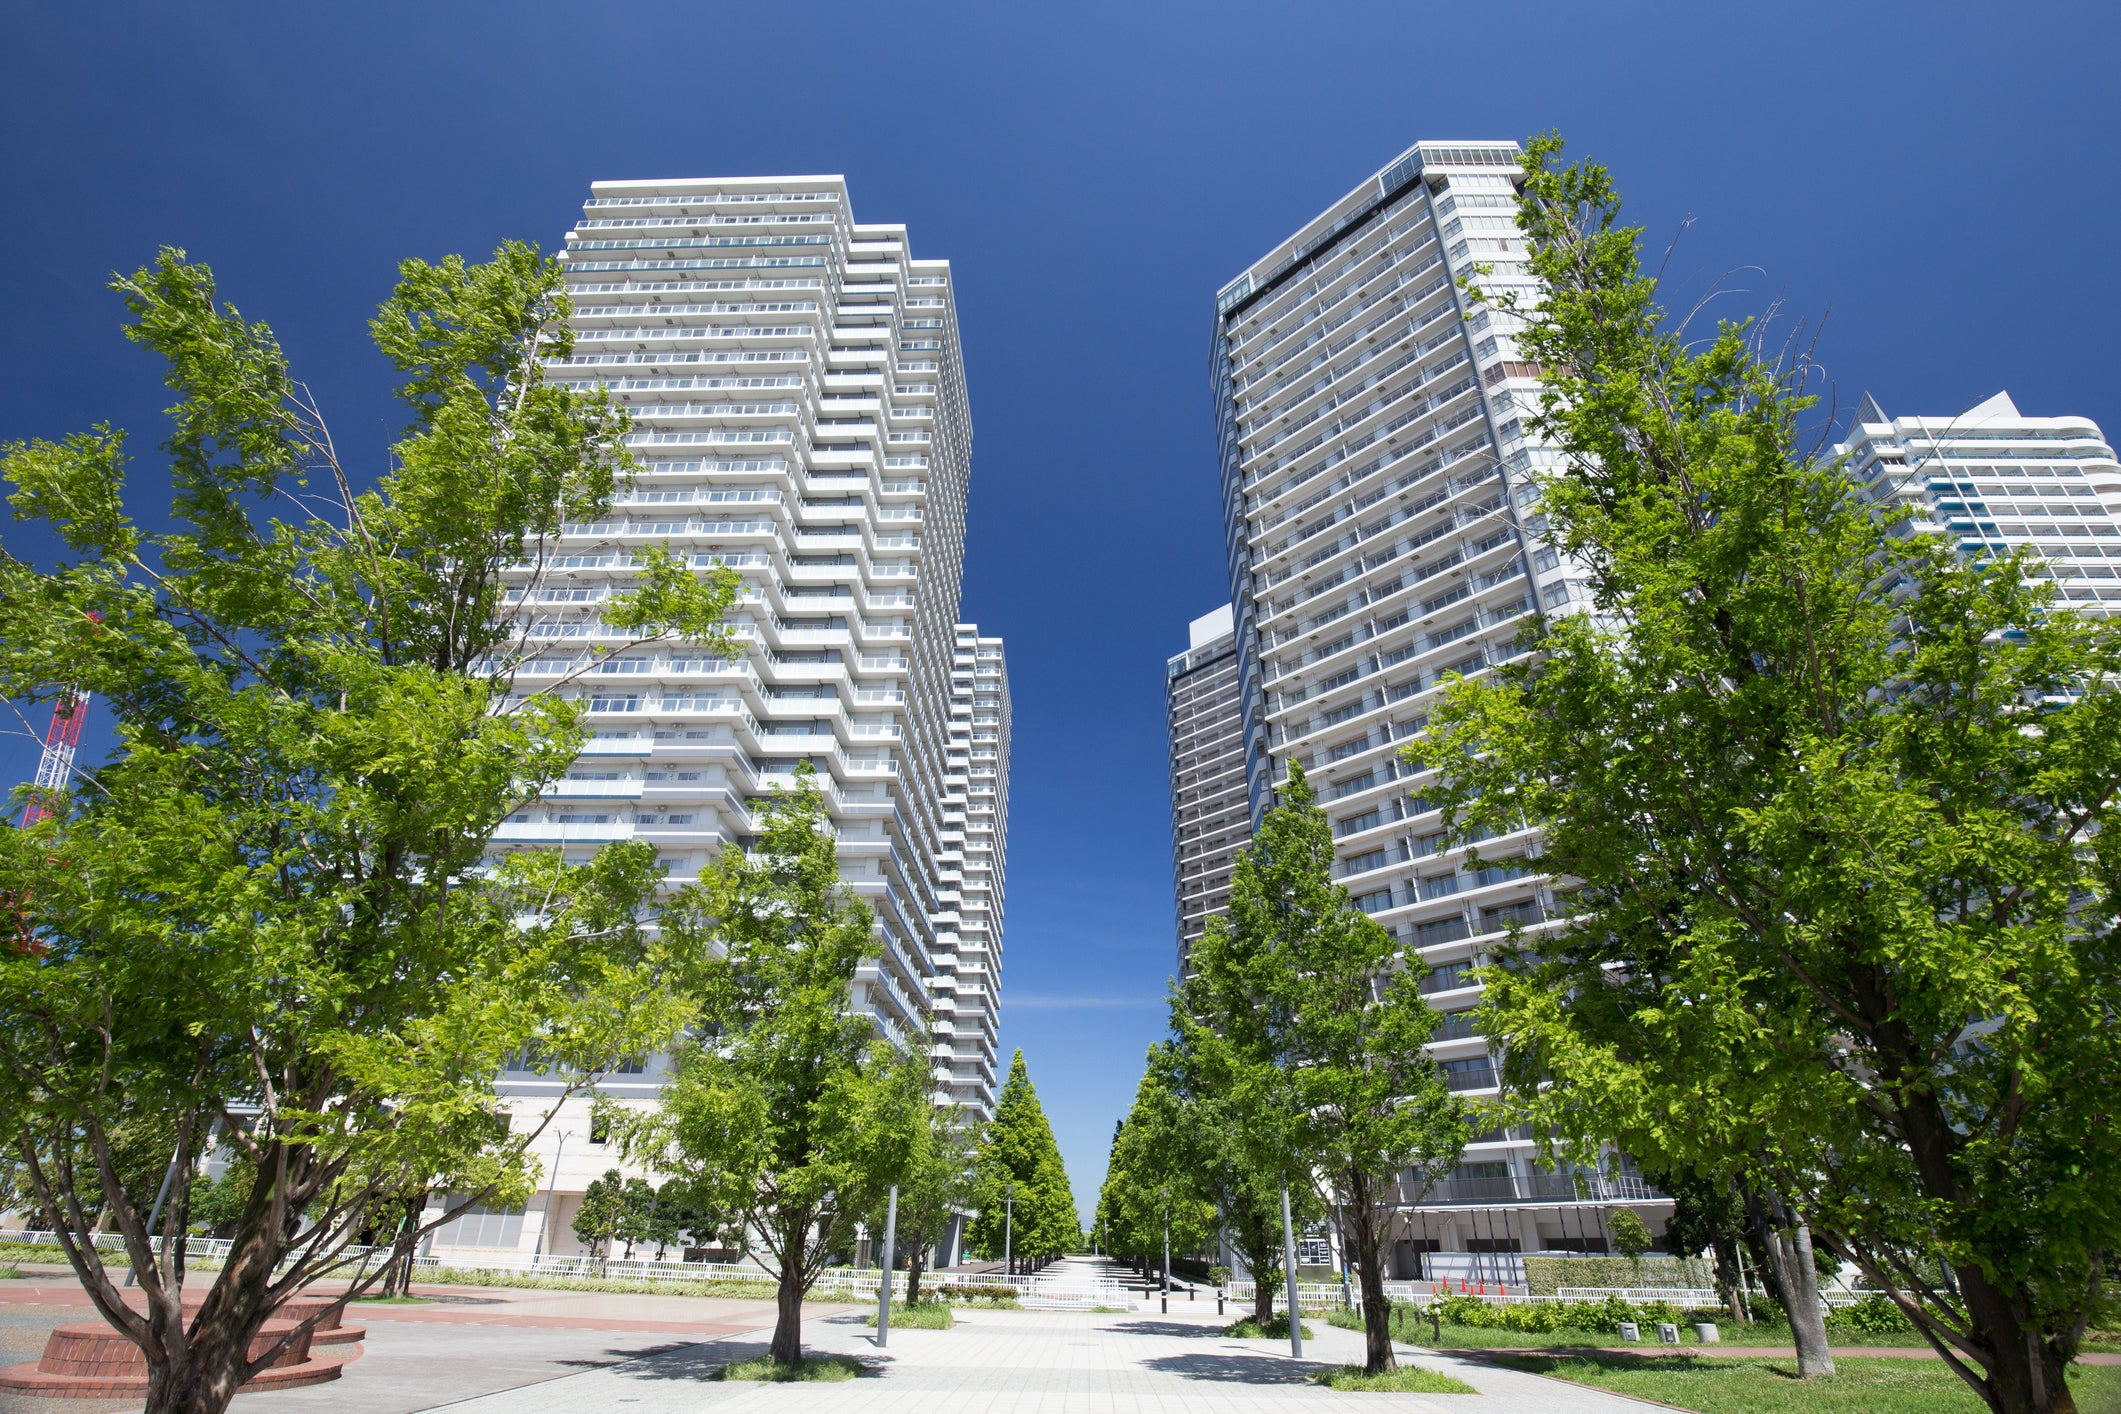 Several tall apartment buildings on a tree-lined street.